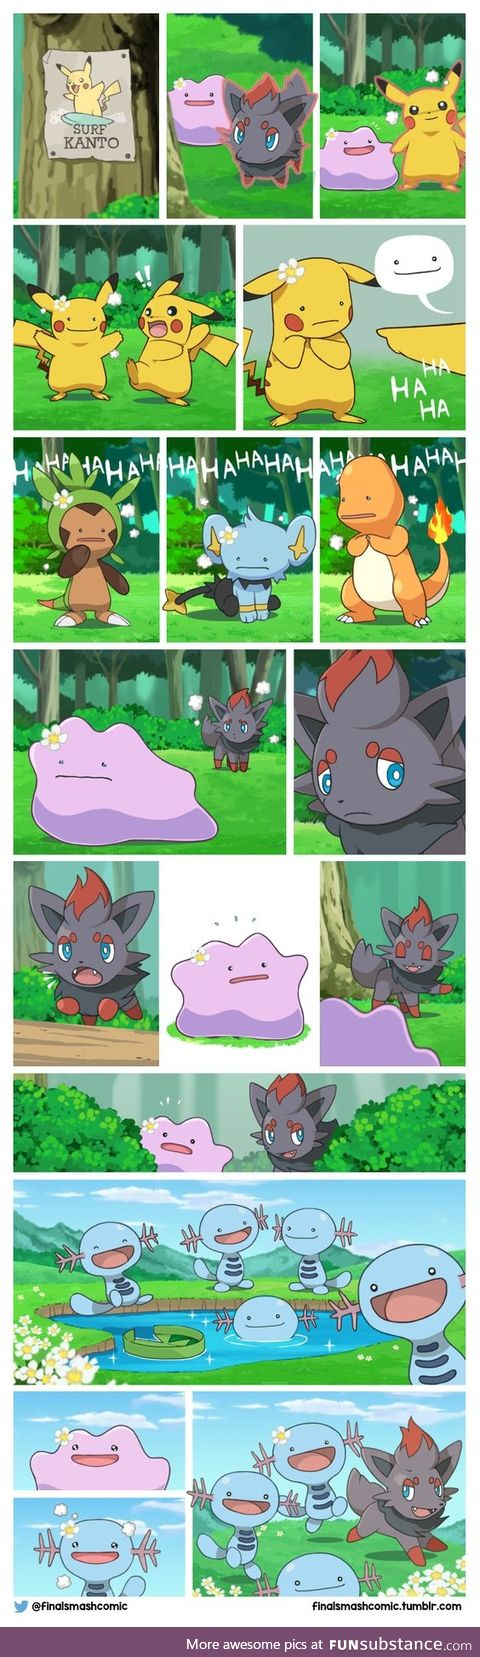 Ditto is best pokemon don't @ me